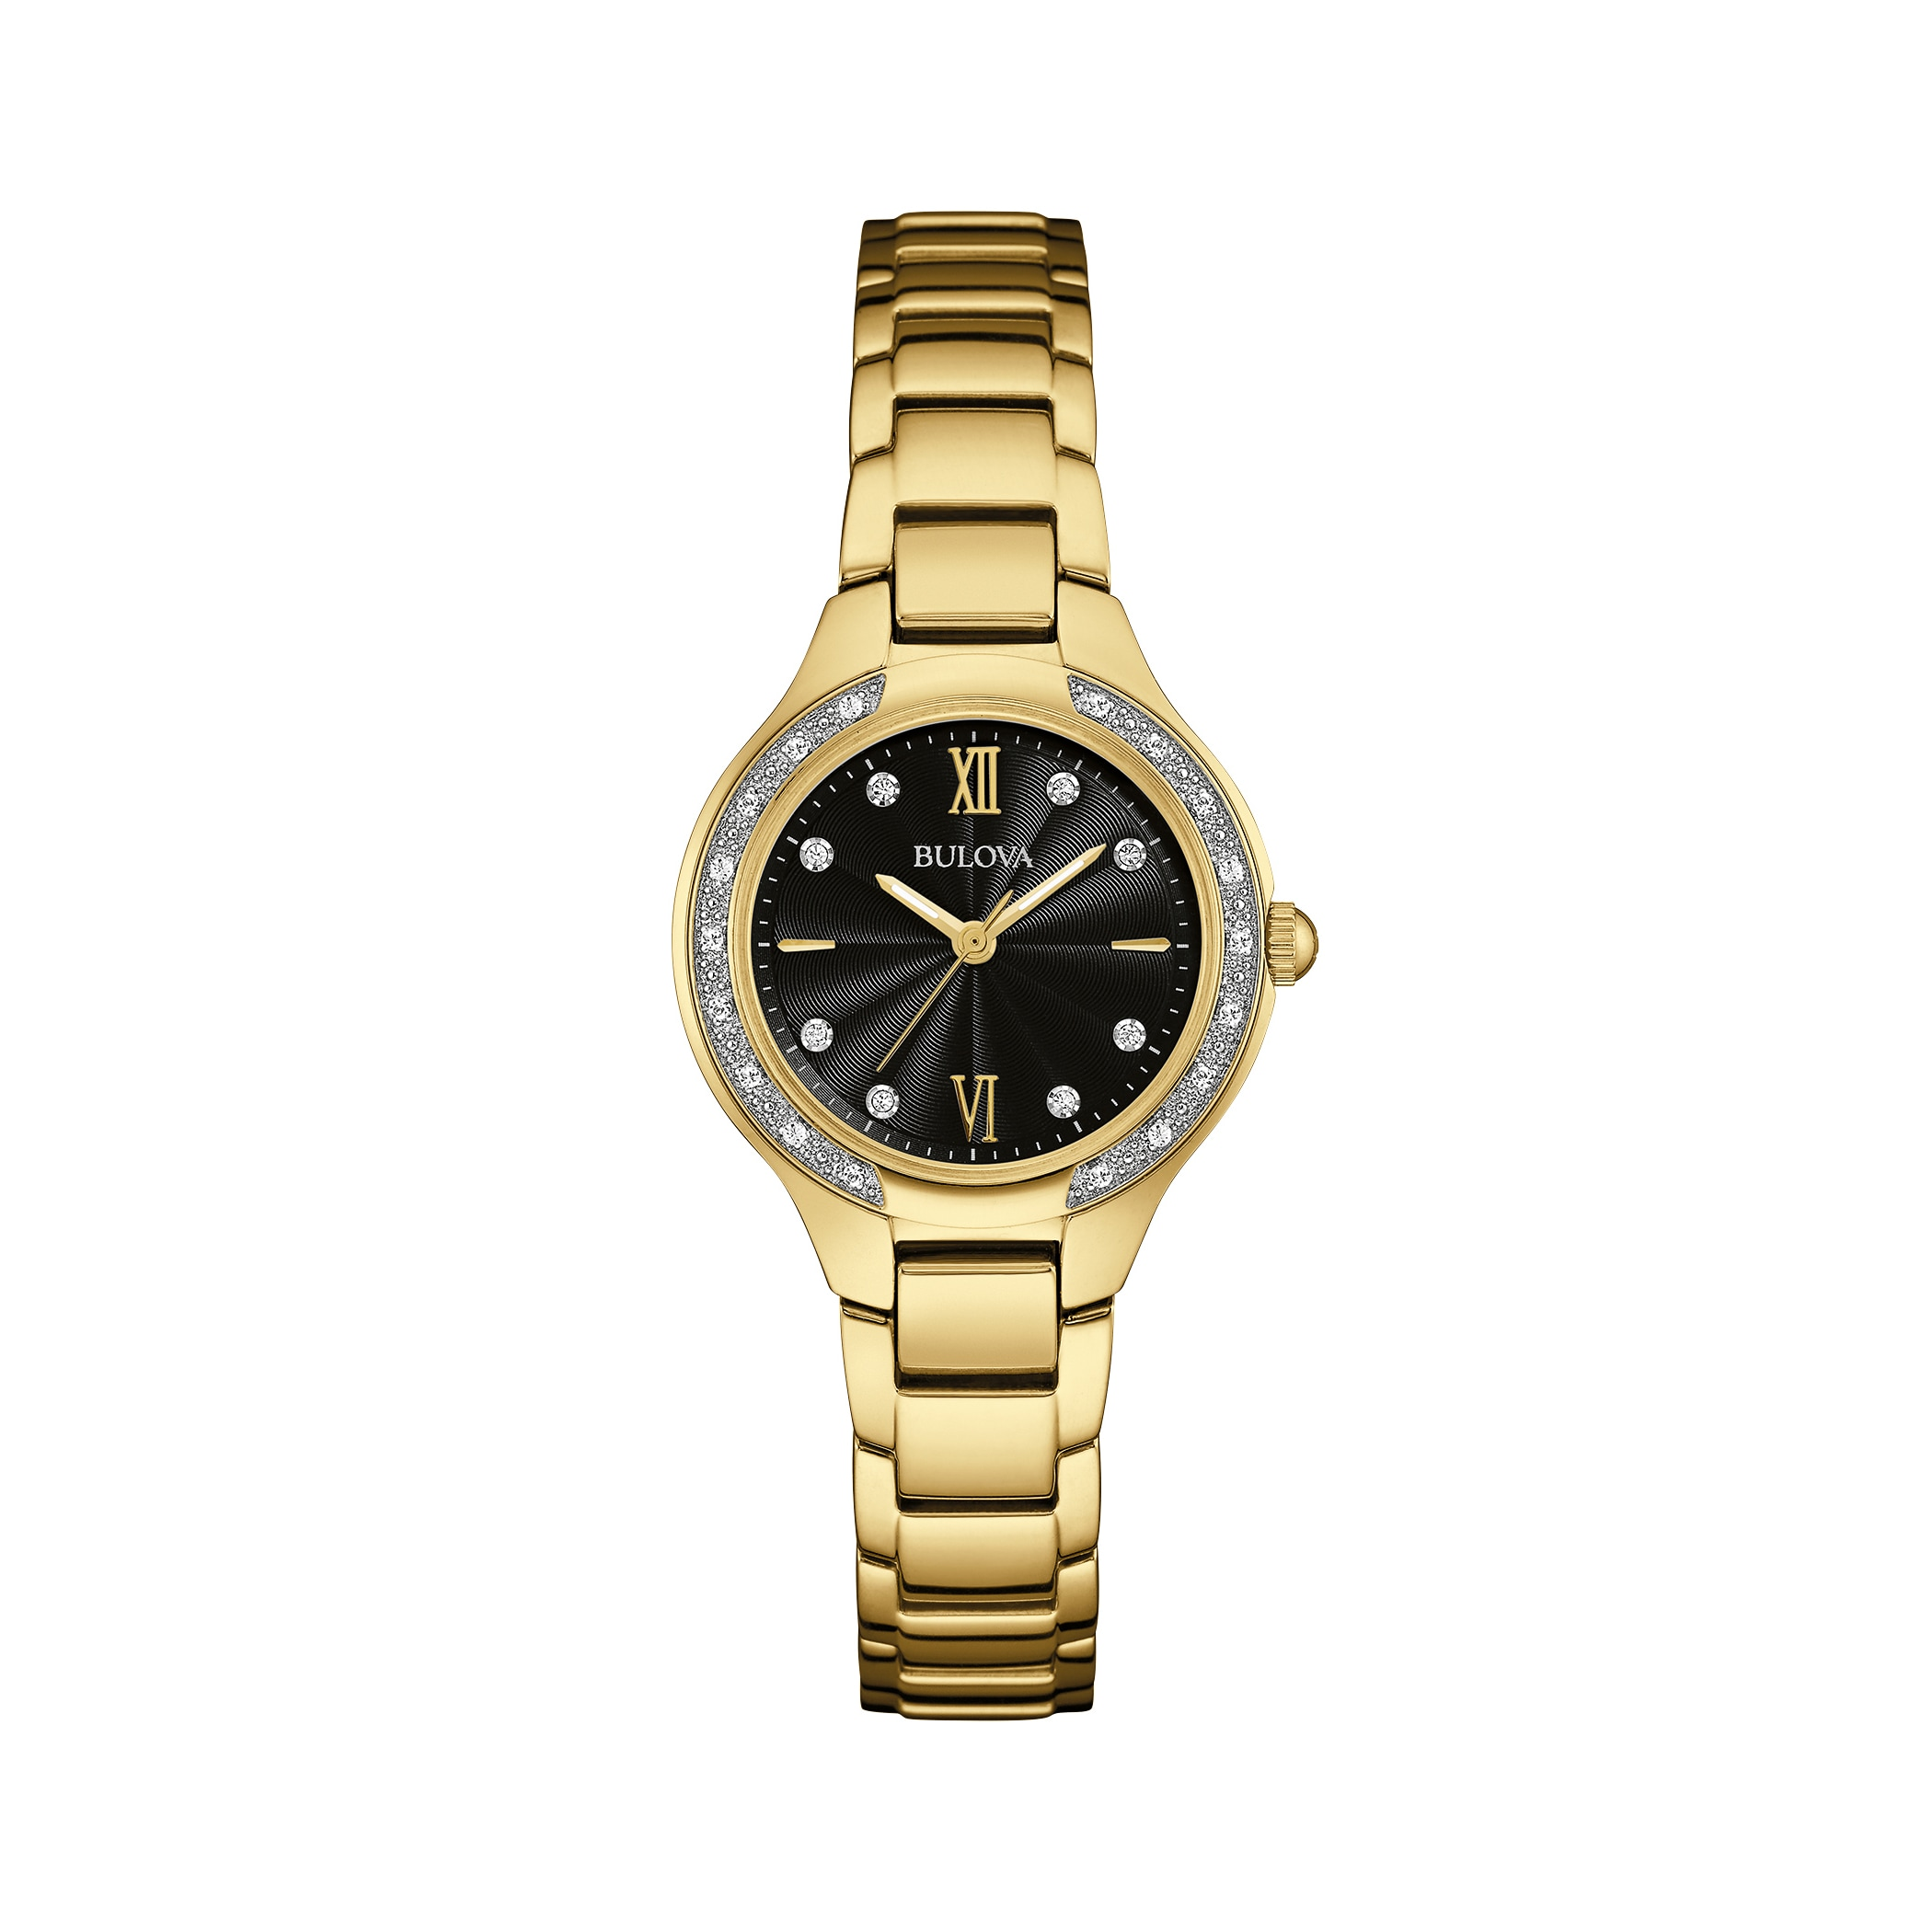 07542361c Shop Bulova Women's 98R222 Goldtone Stainless Diamond Accent Black Dial  Bracelet Watch - Free Shipping Today - Overstock - 18260753